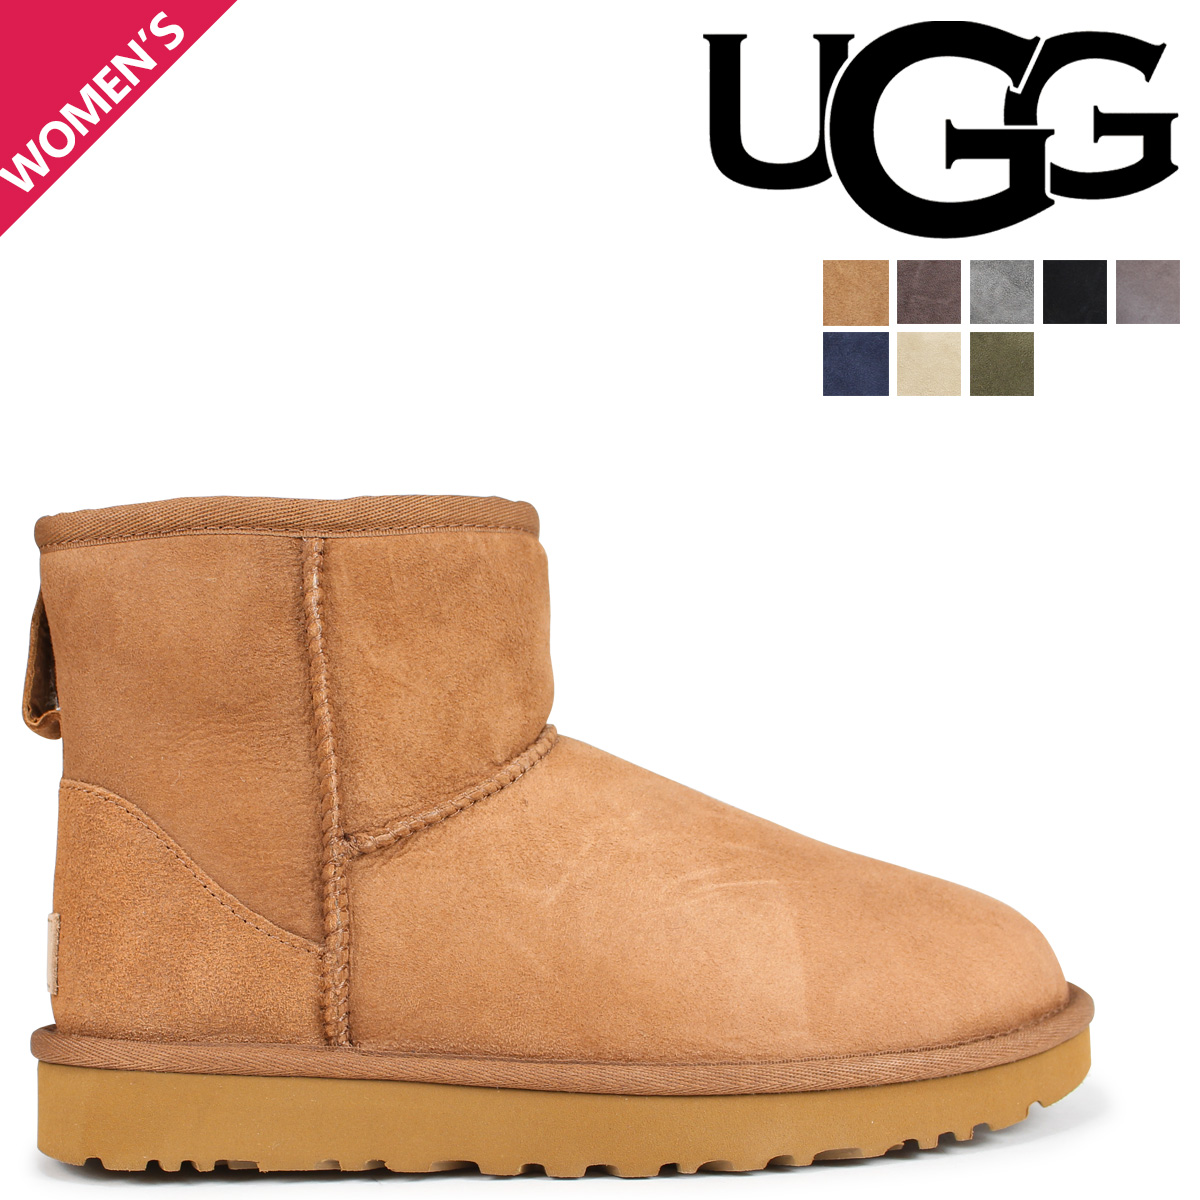 sugar online shop ugg ugg women s classic mini boots 5854 womens rh global rakuten com